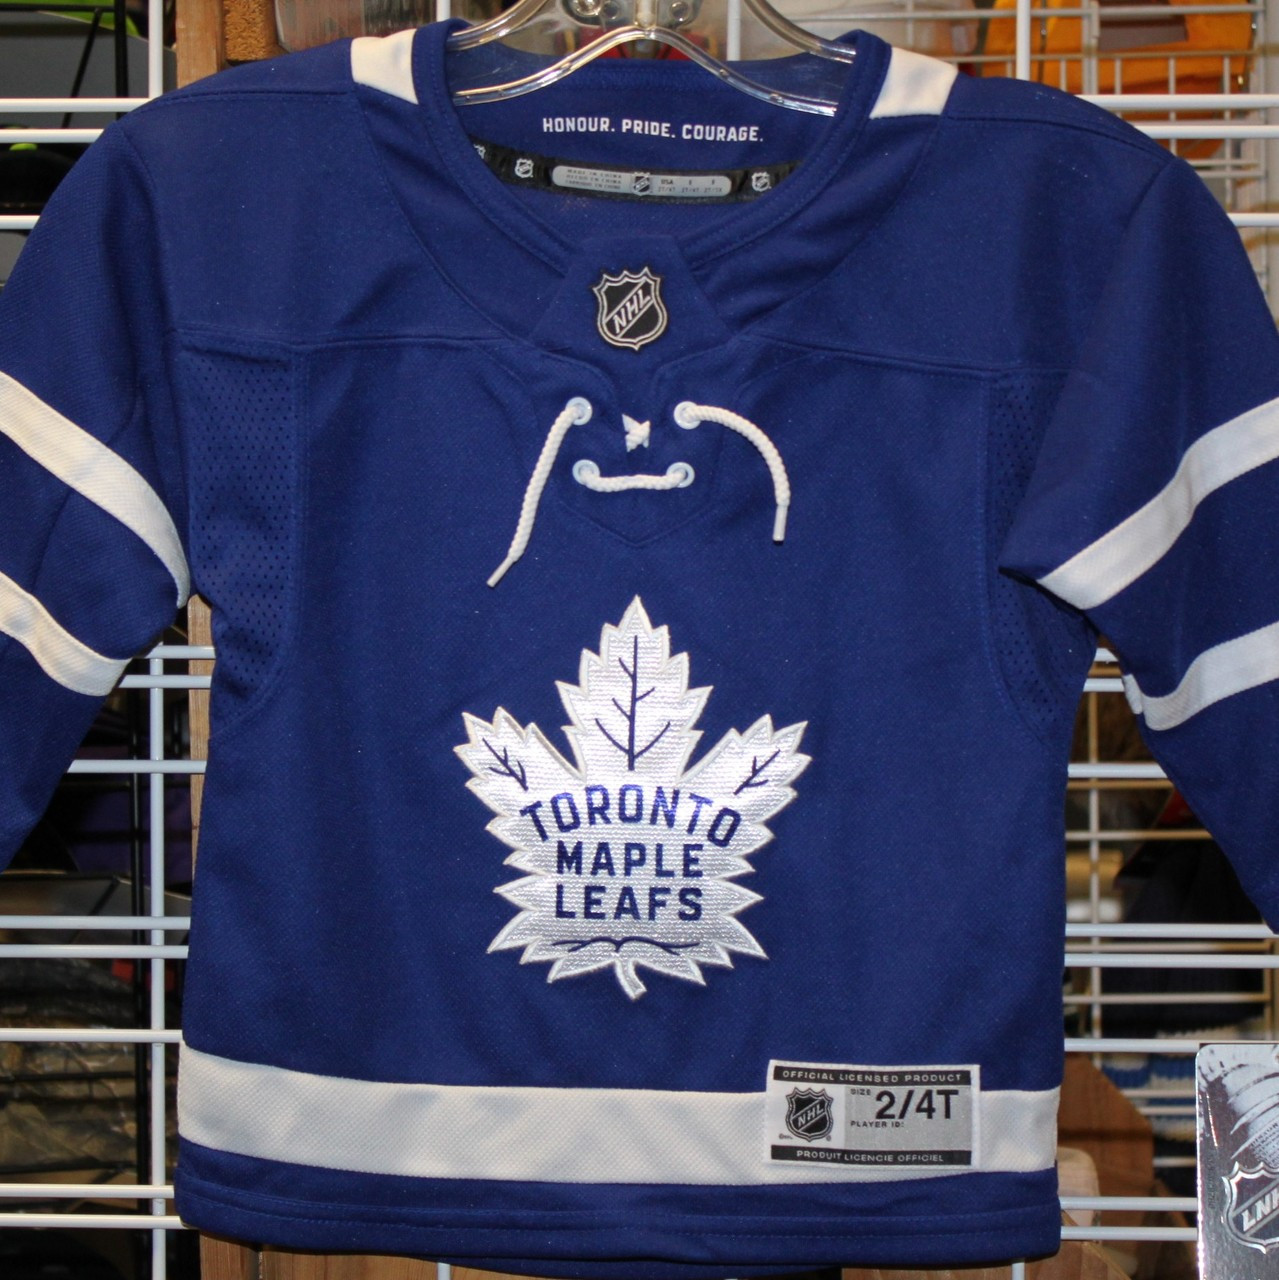 81c693985 Toronto Maple Leafs NHL (2-4 T) TODDLER Replica Jersey - size 2-4T ...